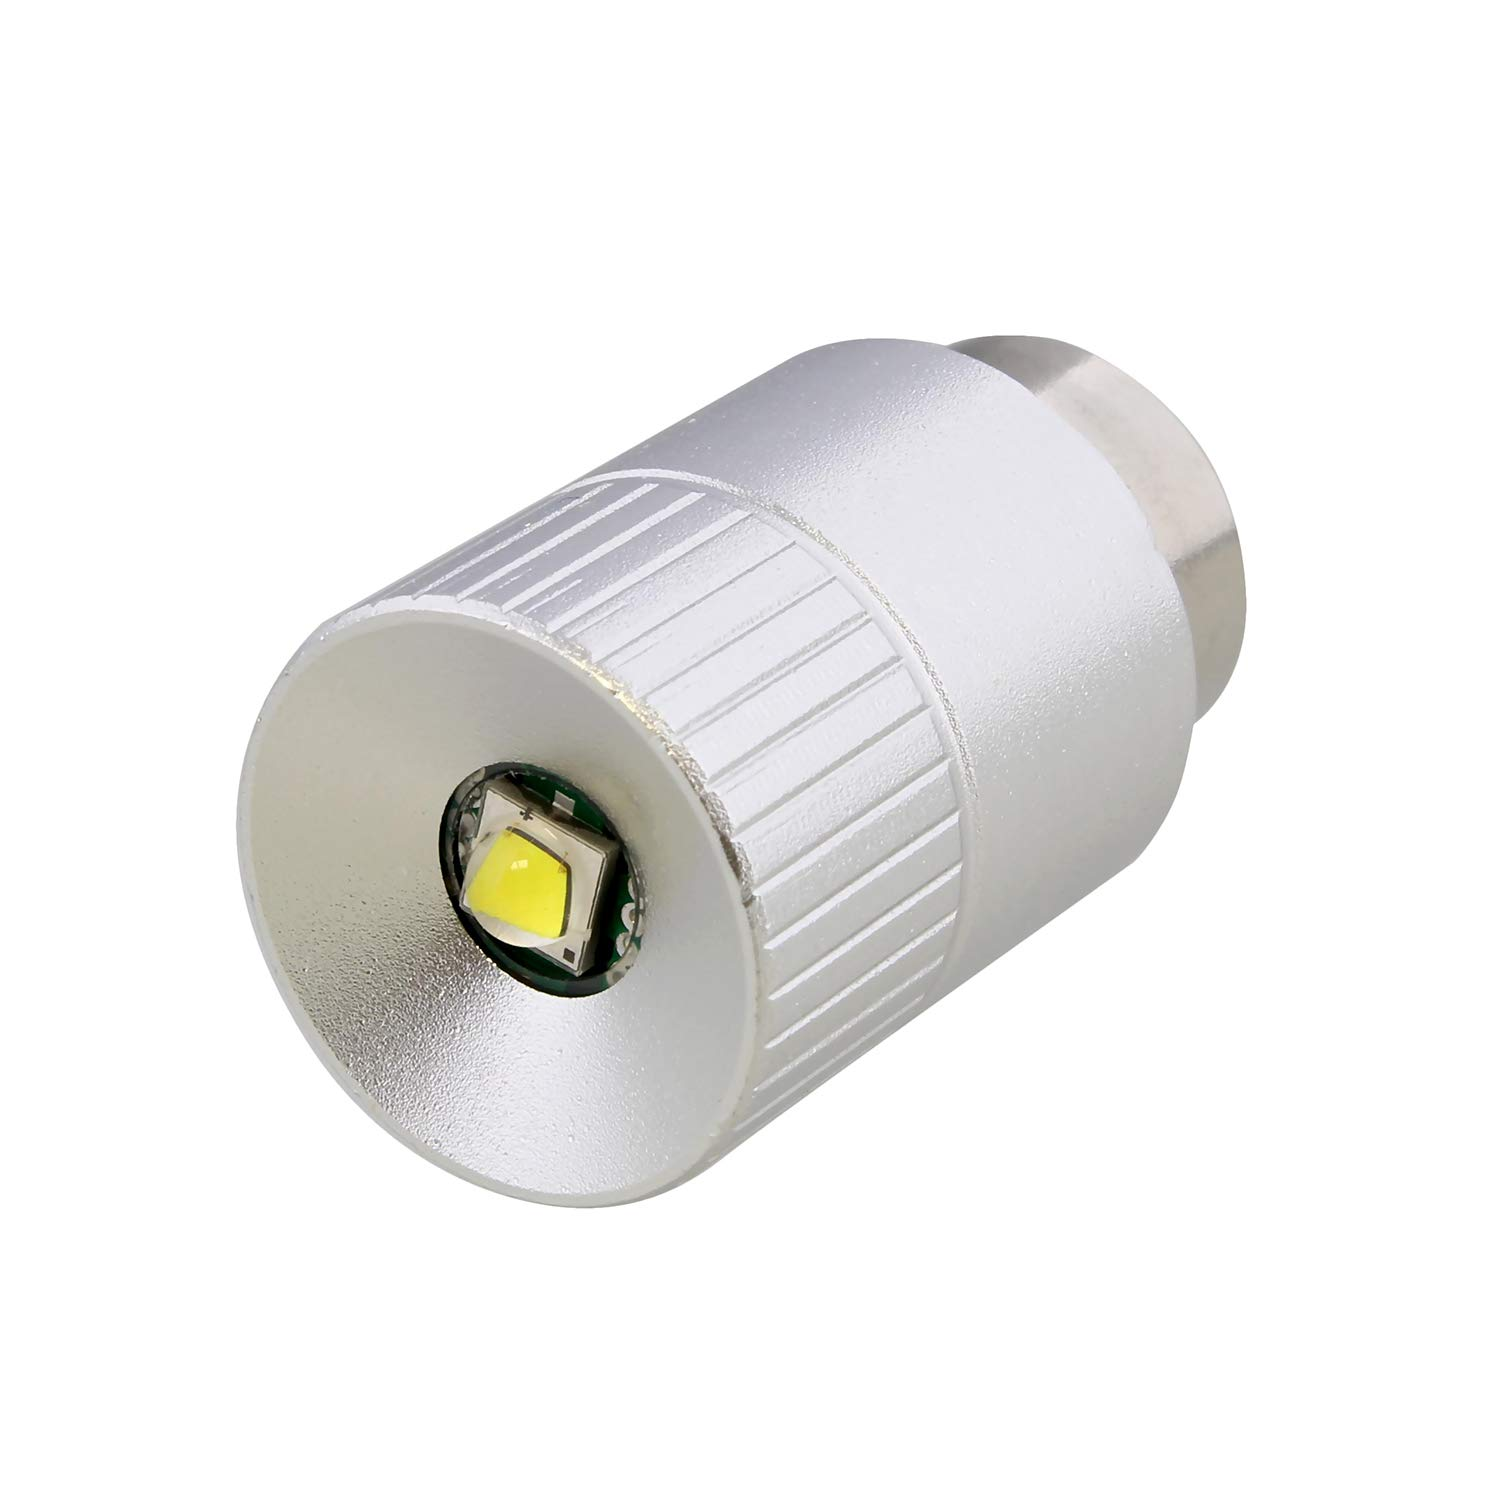 Mag Lite LED Bulb Maglight LED Conversion Kit LED Replacement Bulbs LED Flashlight Bulb 2-3 C and D Cells DS1045MG-3WPG